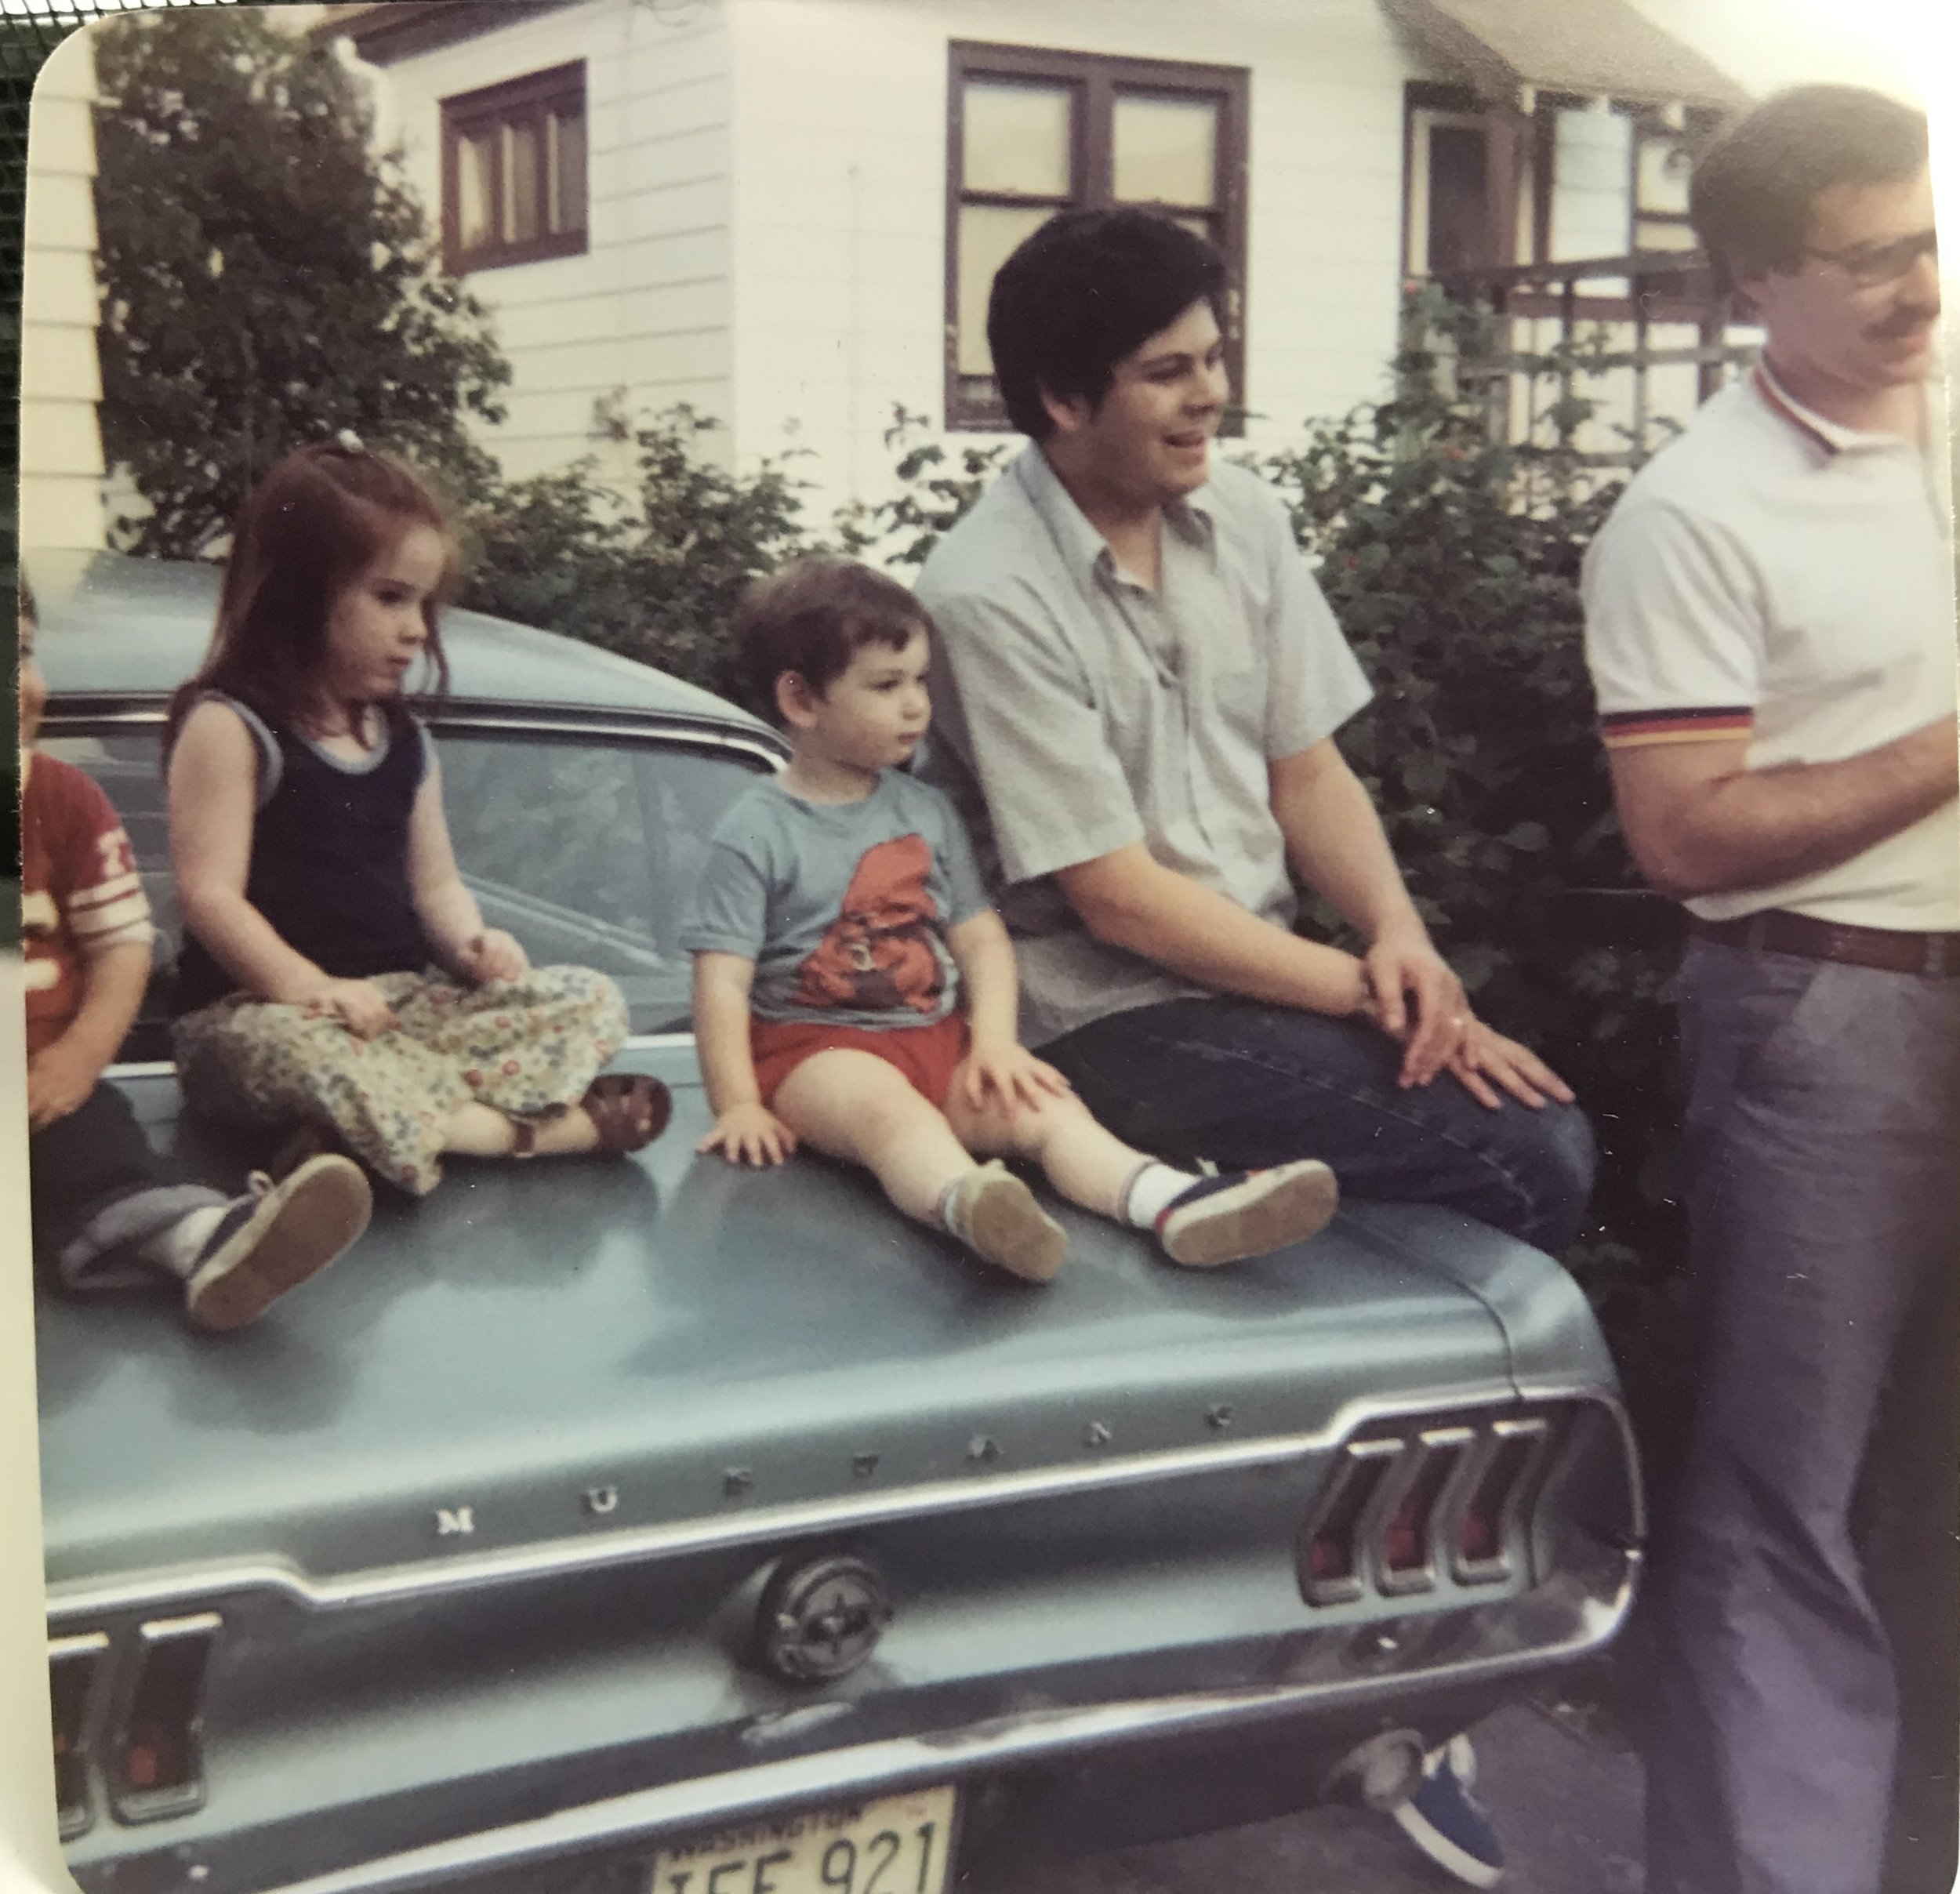 This must be summer of 1975 so I'm 4, almost 5 years old - that's me with the red hair on our blue mustang we had when I was small. We'd slide around the back seat - omg the safety back then was so bad - you can see how short my arms next to my cousin who must be barely 2 years old. My brother is to my right, then two uncles on the end. I think it was 4th of July, I don't know why I remember that but look how serious I am while everyone else is smiling. I was a very, very serious kid.